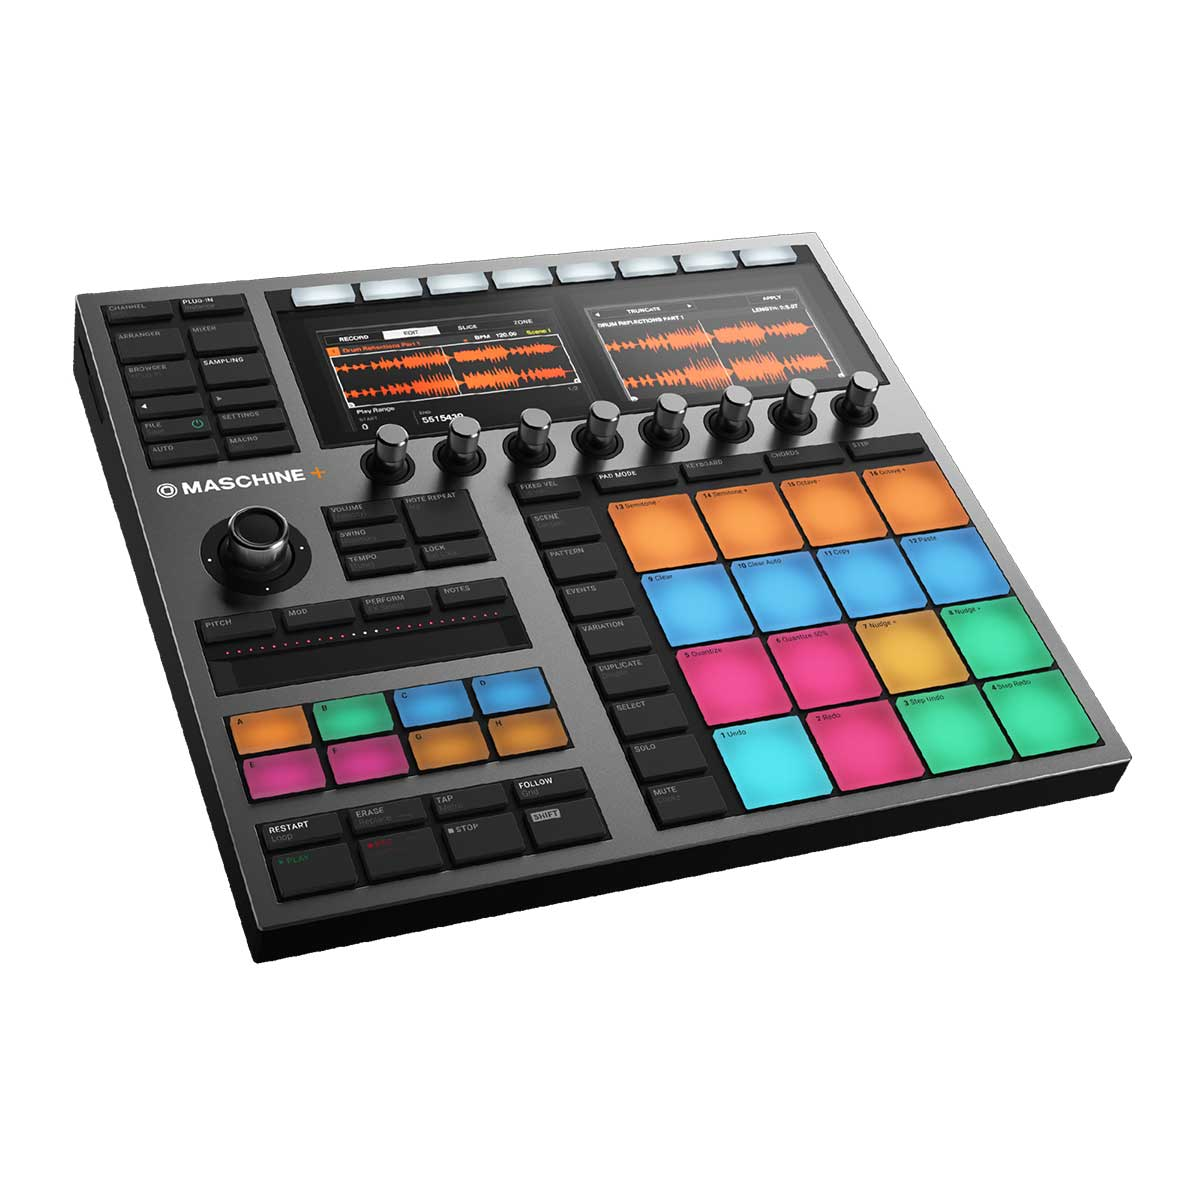 Native Instruments Machine+ stand-alone sampling, sequencing and beat making machine